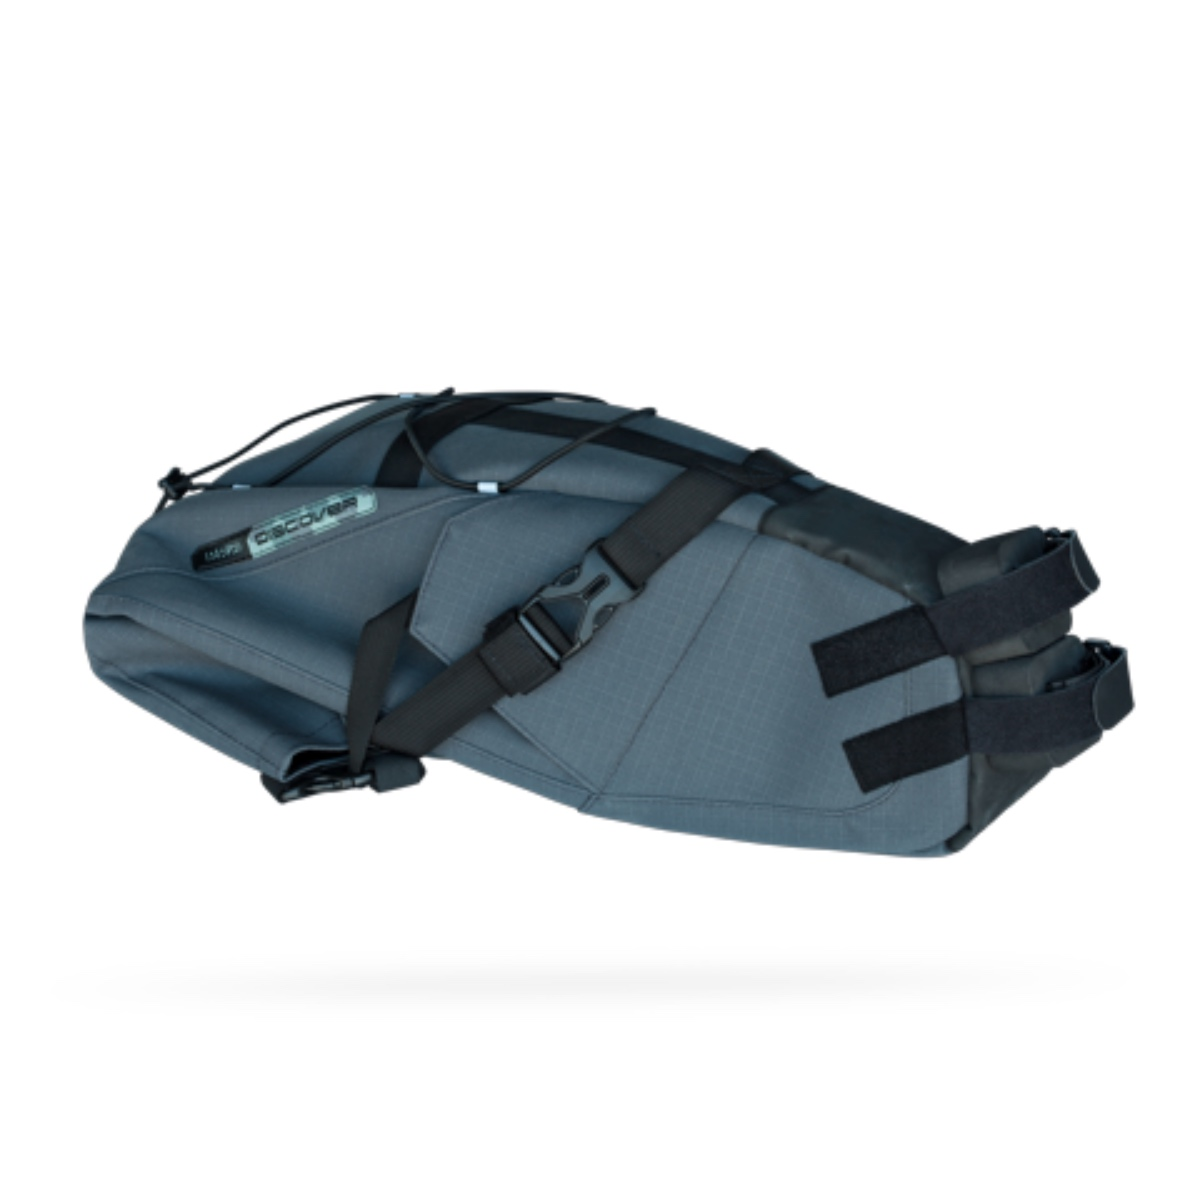 PRO Discover Bags